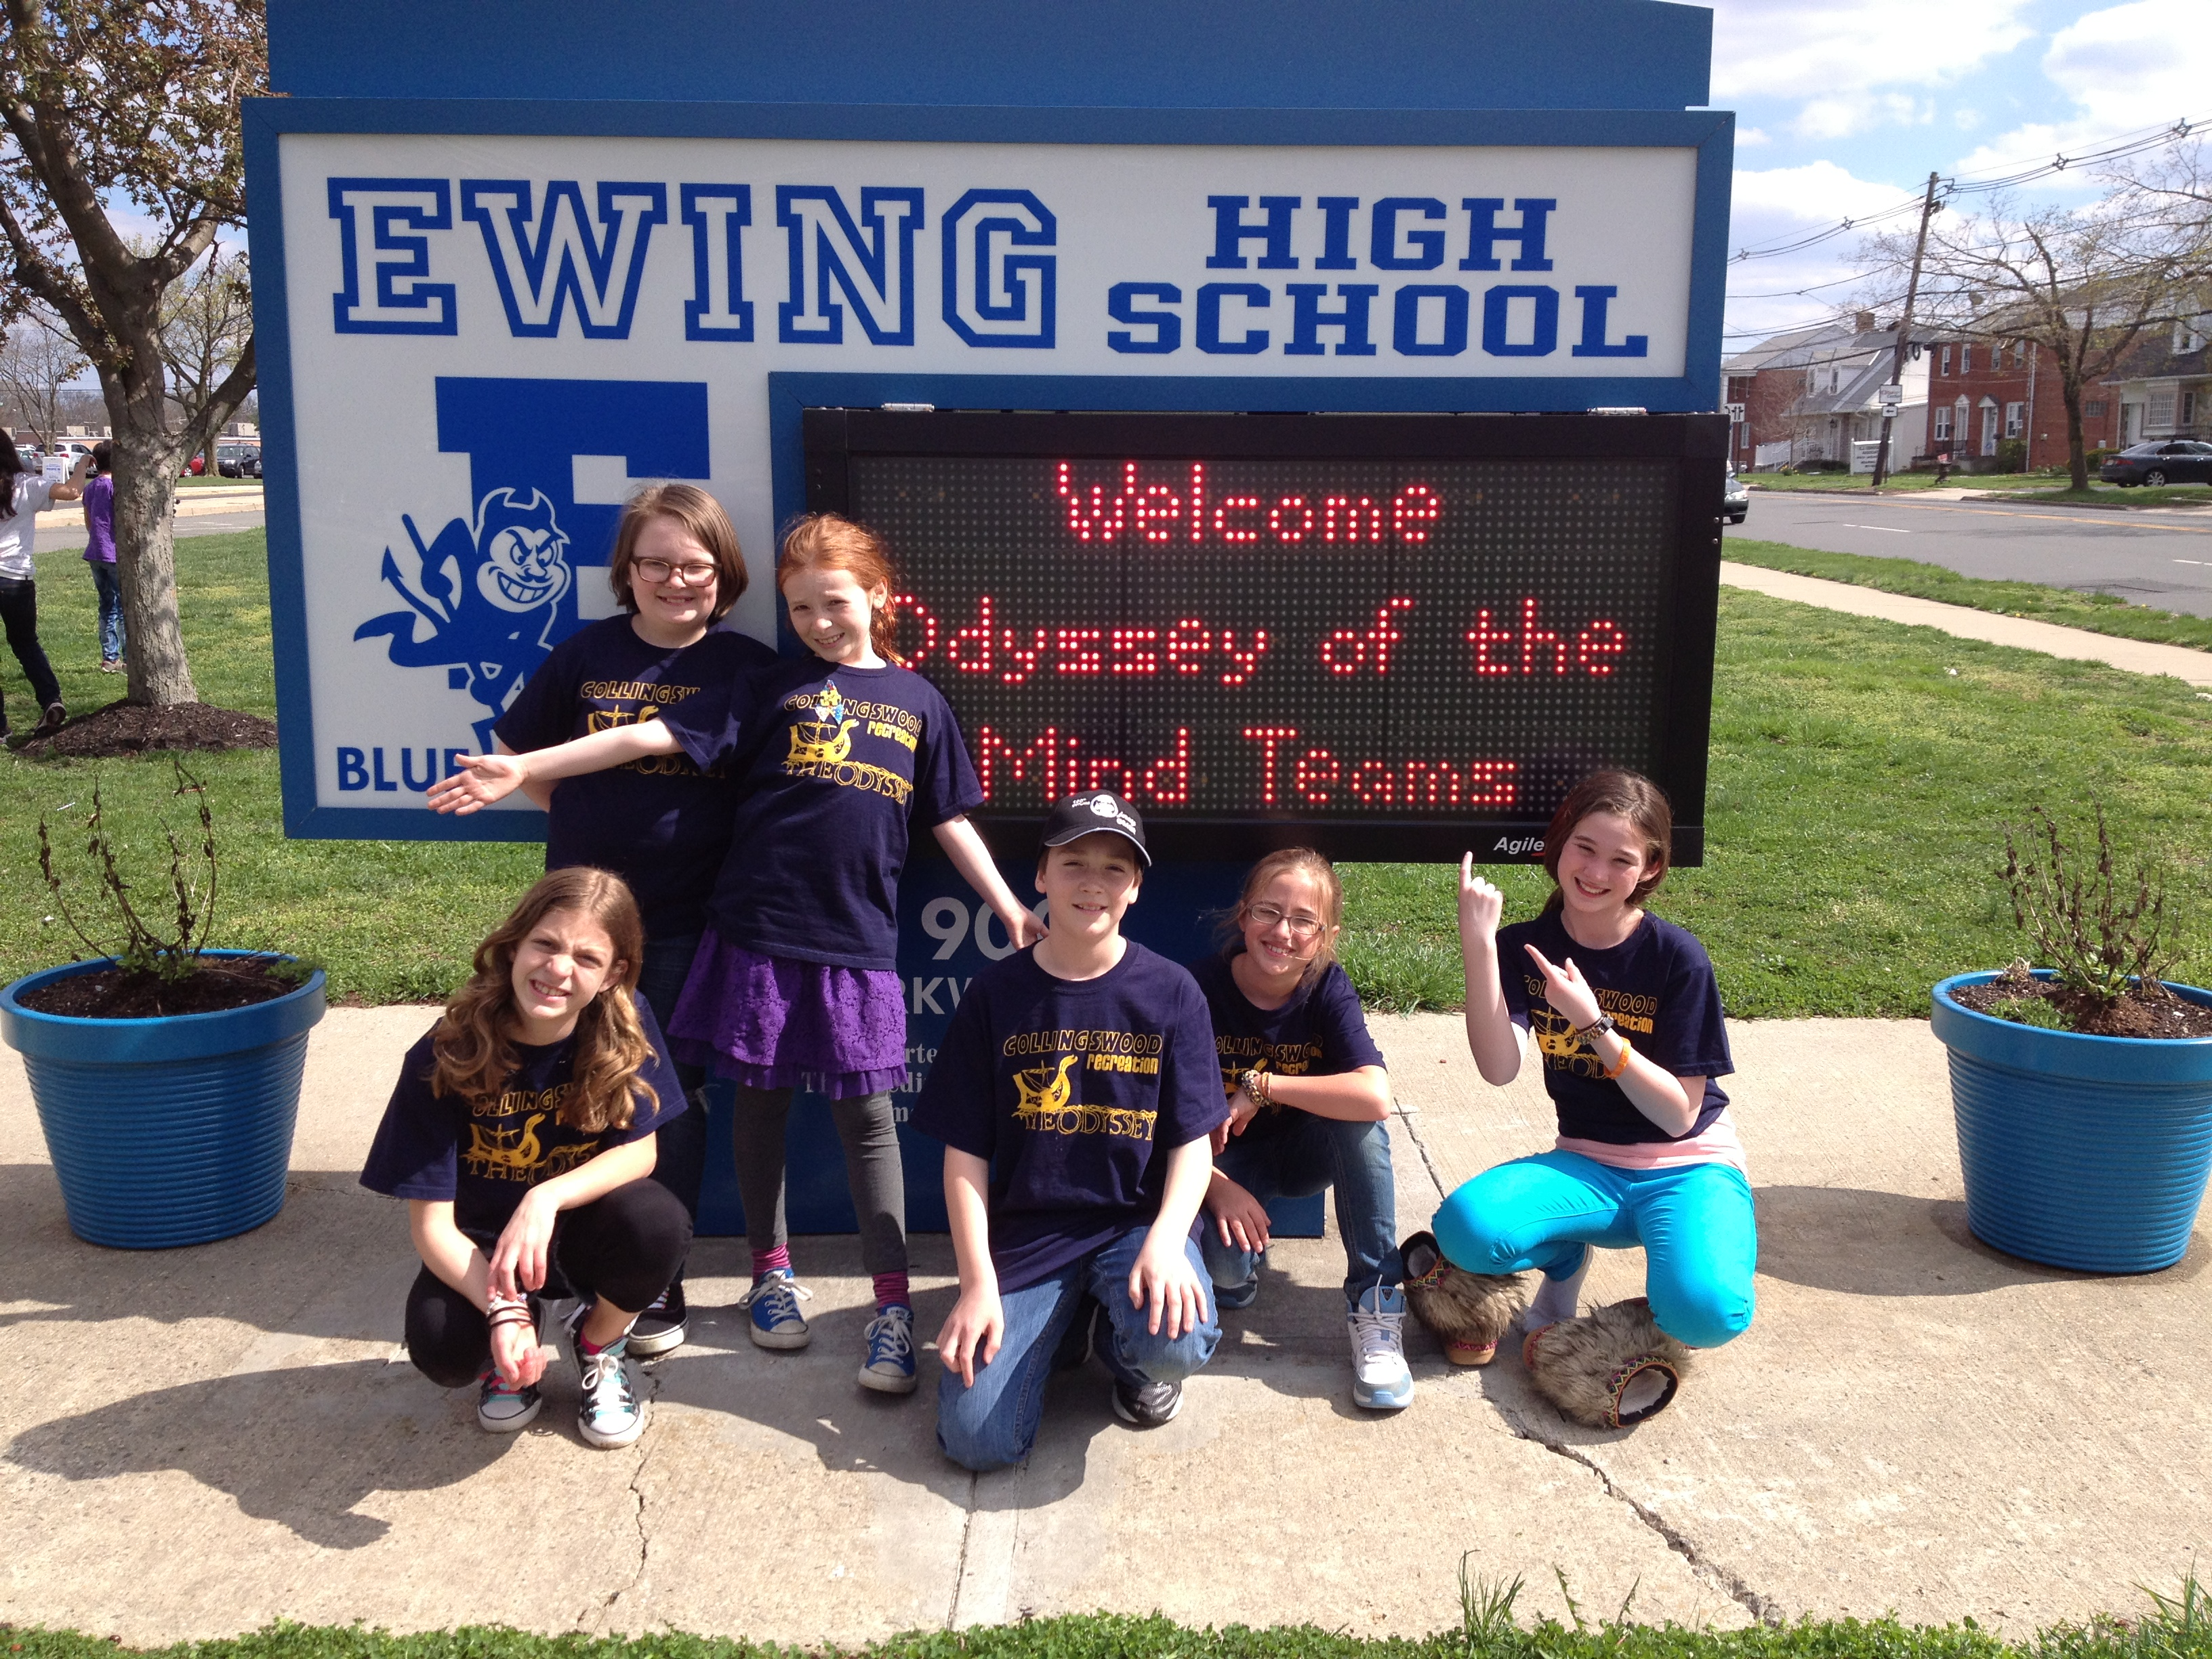 Our Pet Project Team traveled to Ewing to compete against teams from all over the state.